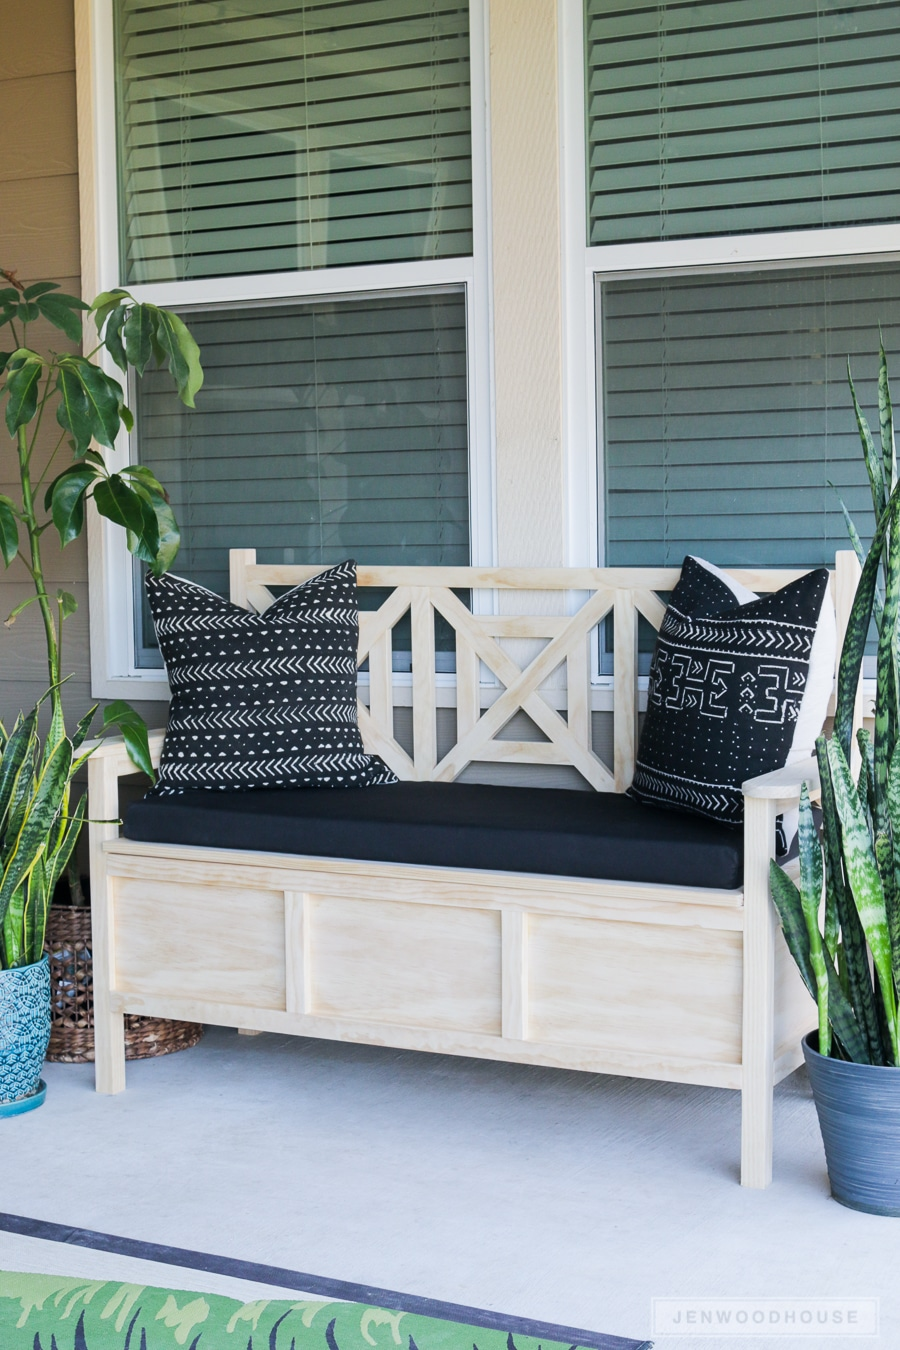 How to make an outdoor bench with storage free plans